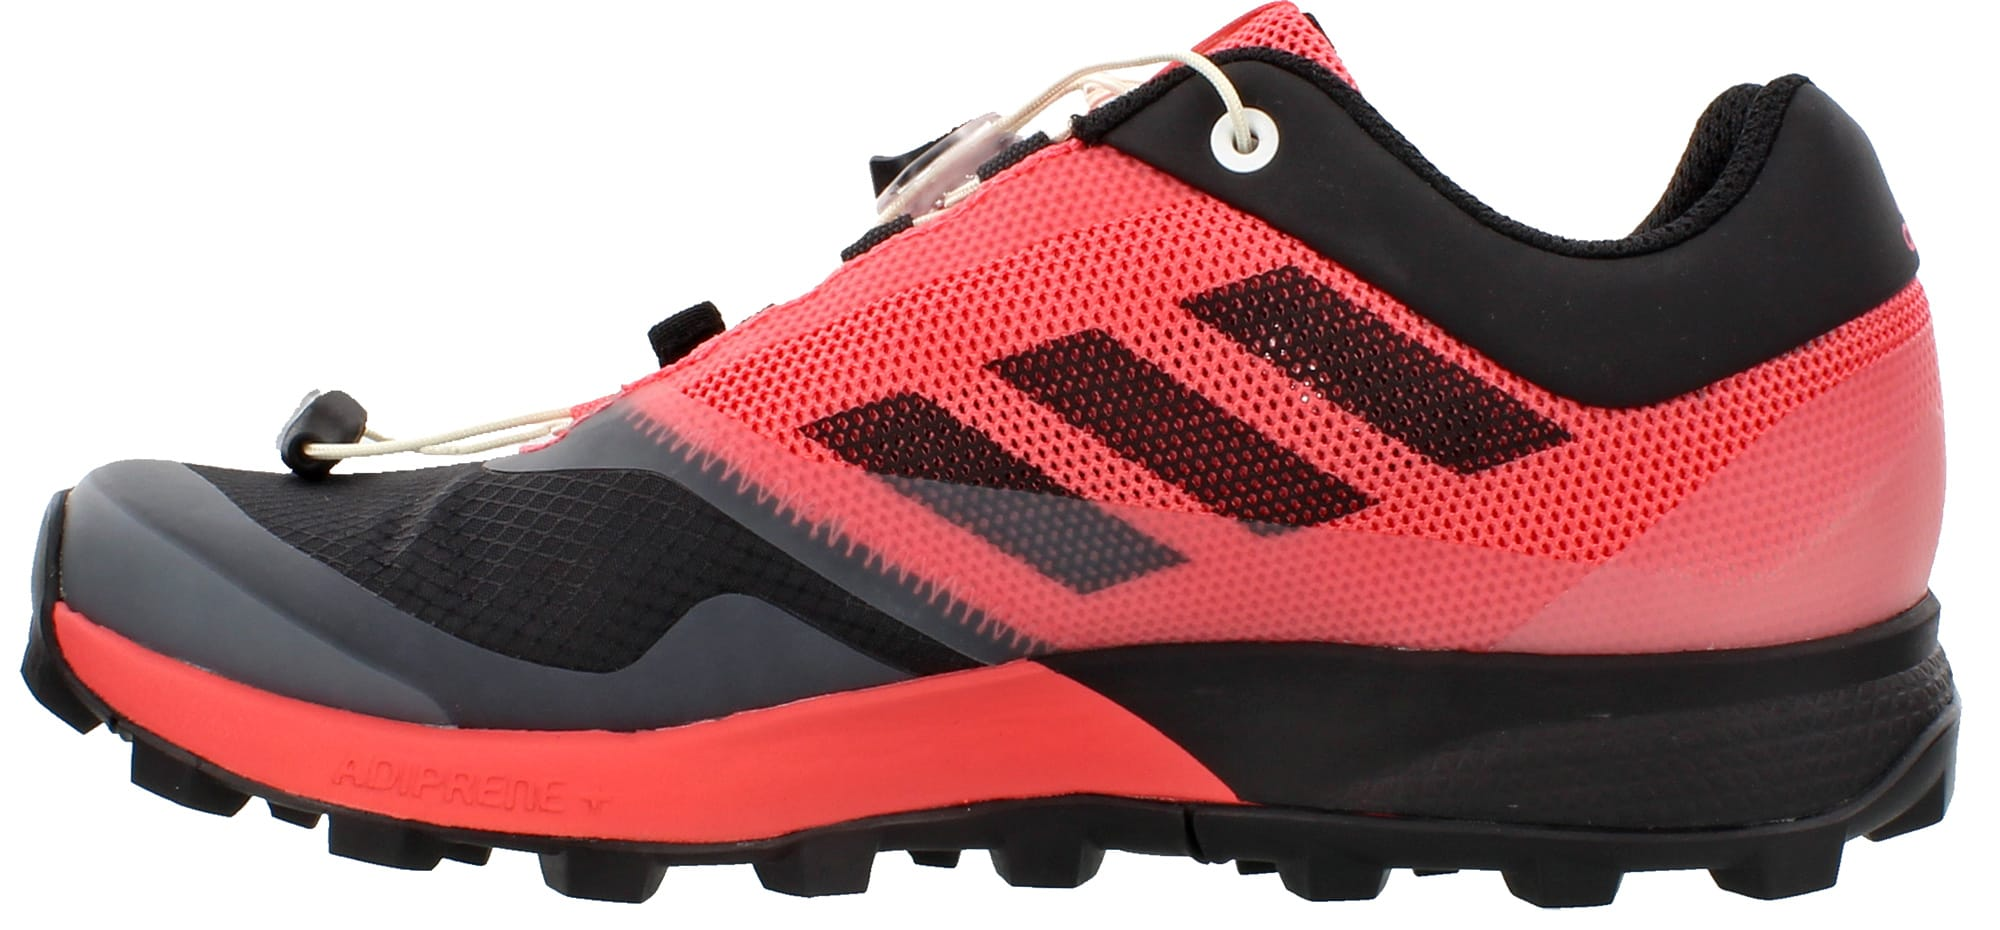 Adidas Terrex Trailmaker Shoes - Womens